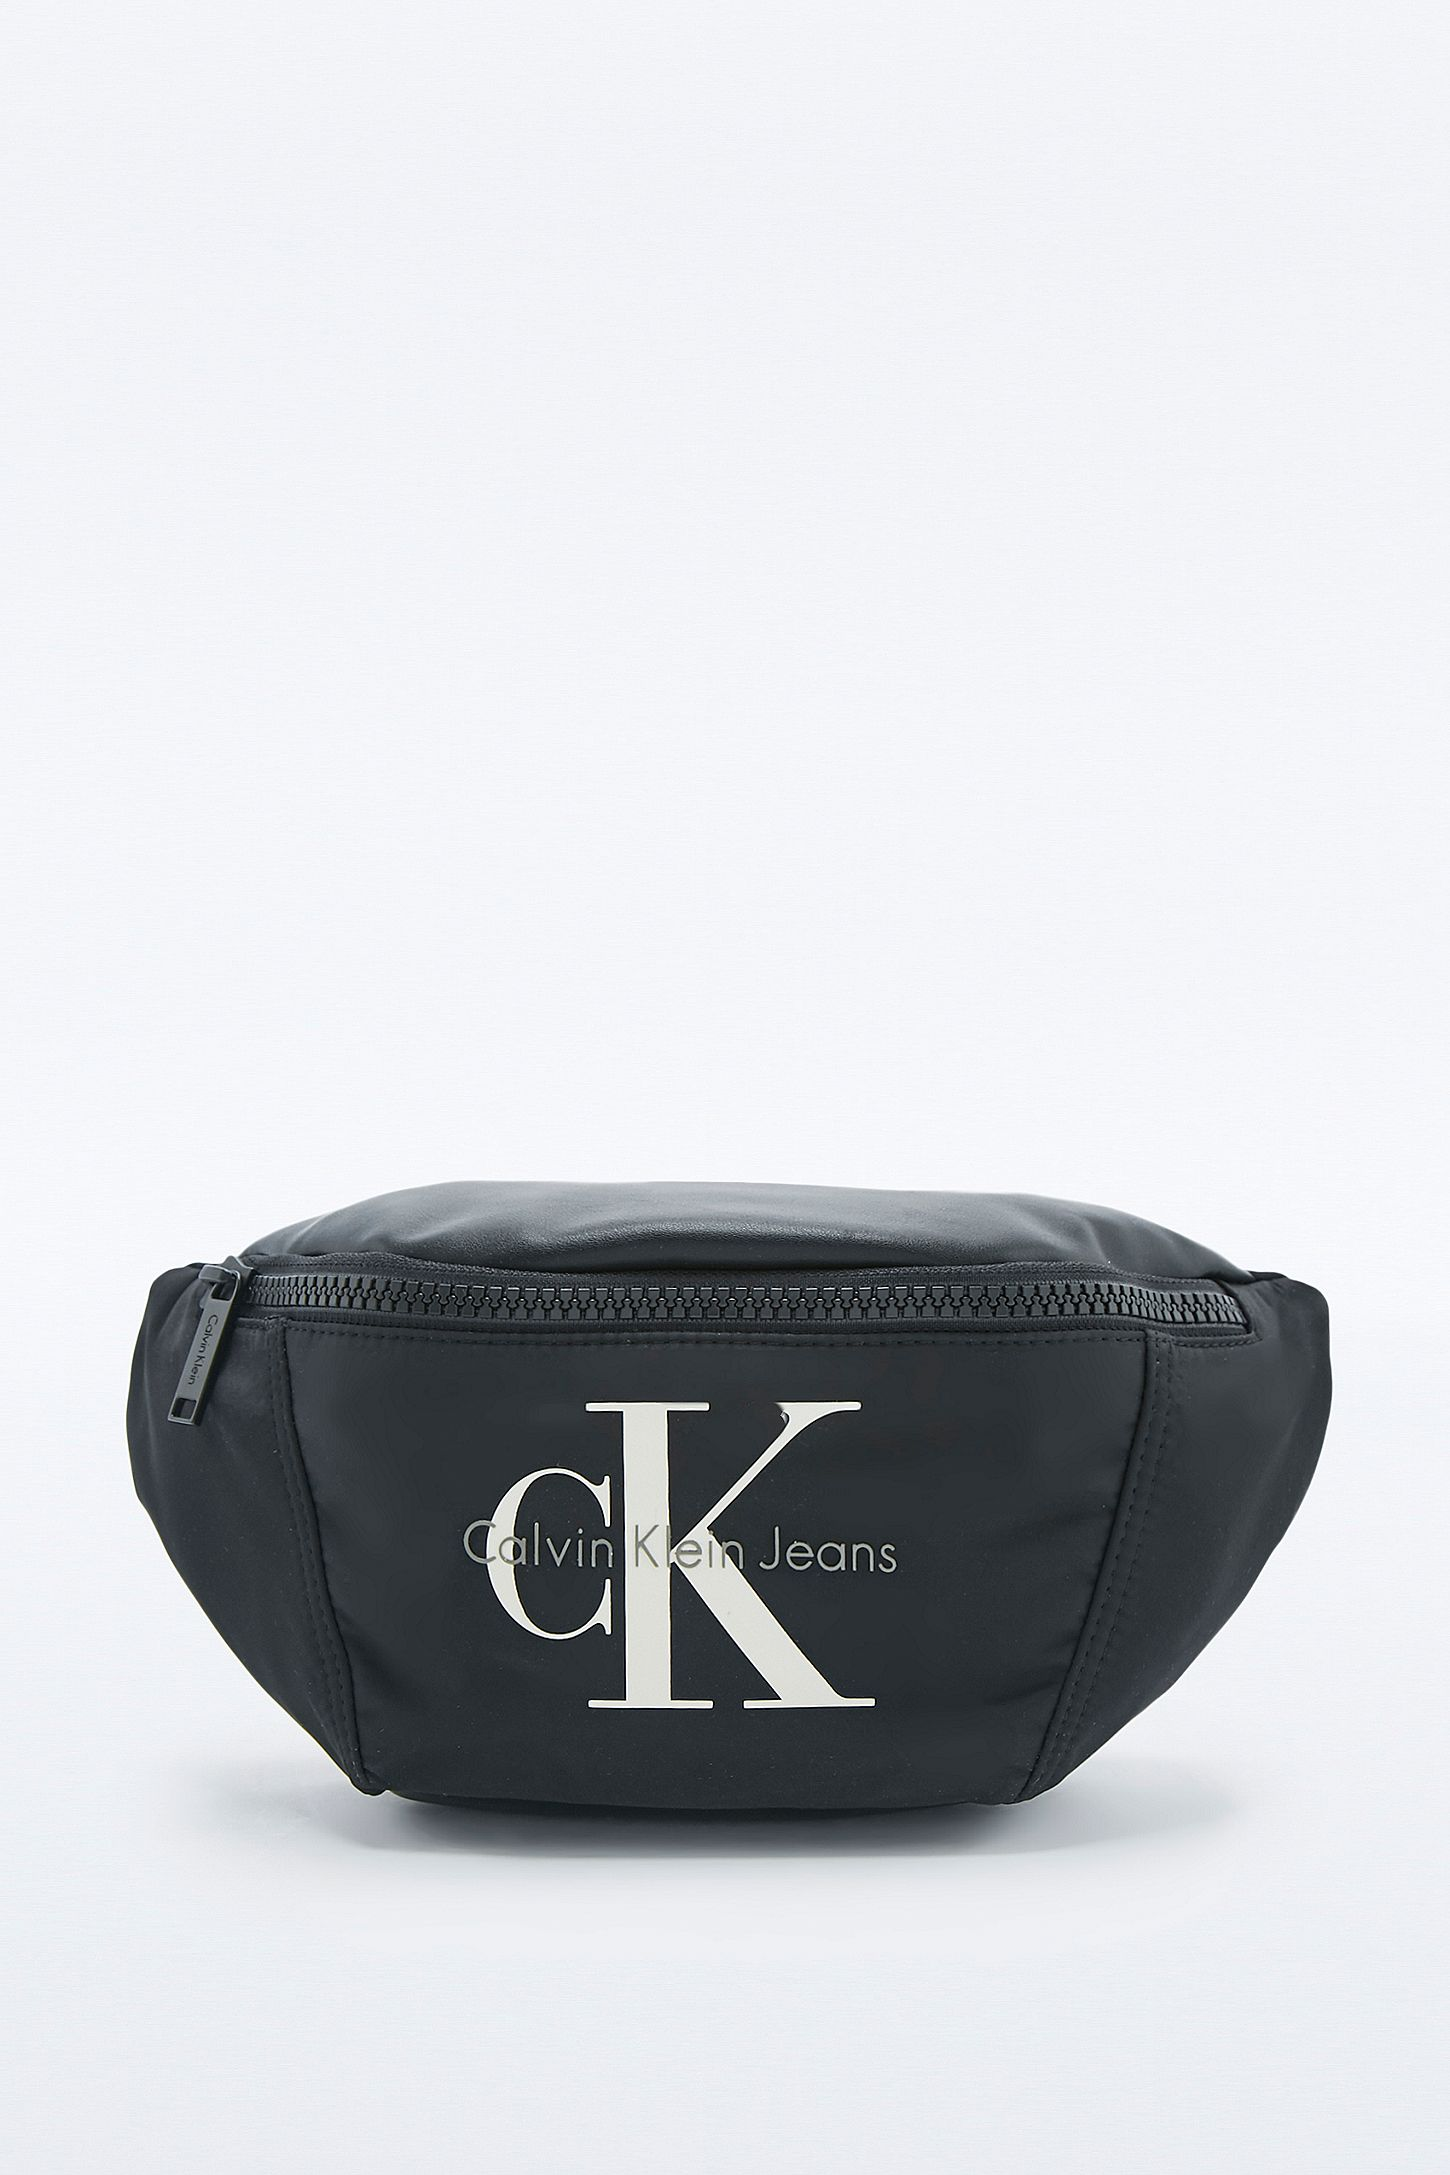 2889cd3e9d293e Calvin Klein Bum Bag. Click on image to zoom. Hover to zoom. Double Tap to  Zoom